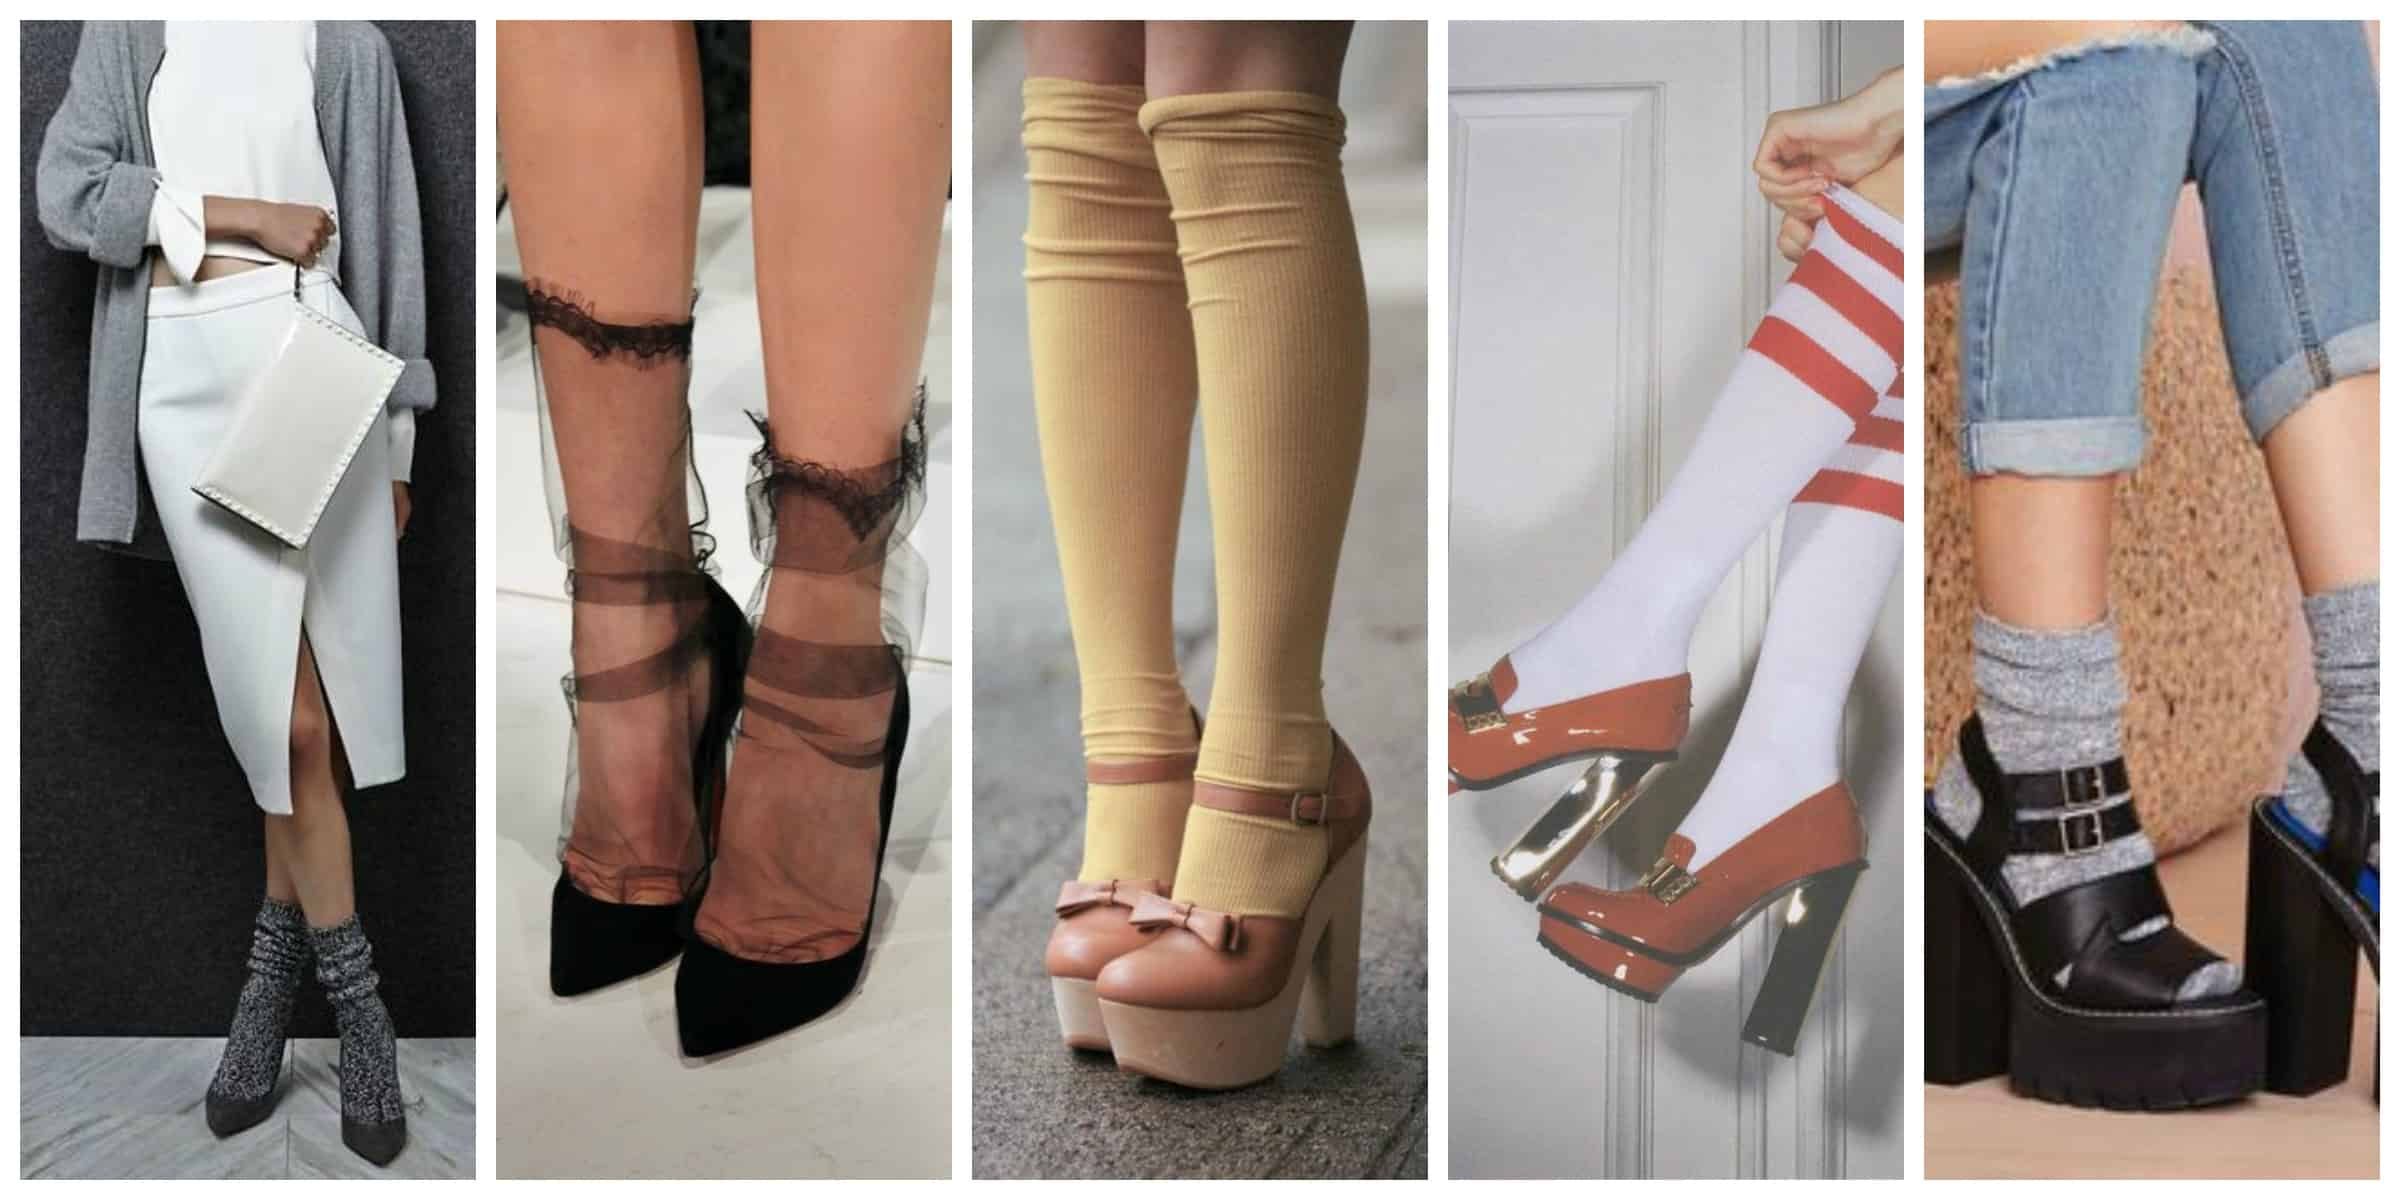 TREND ALERT: Heels & Socks – The Fashion Tag Blog